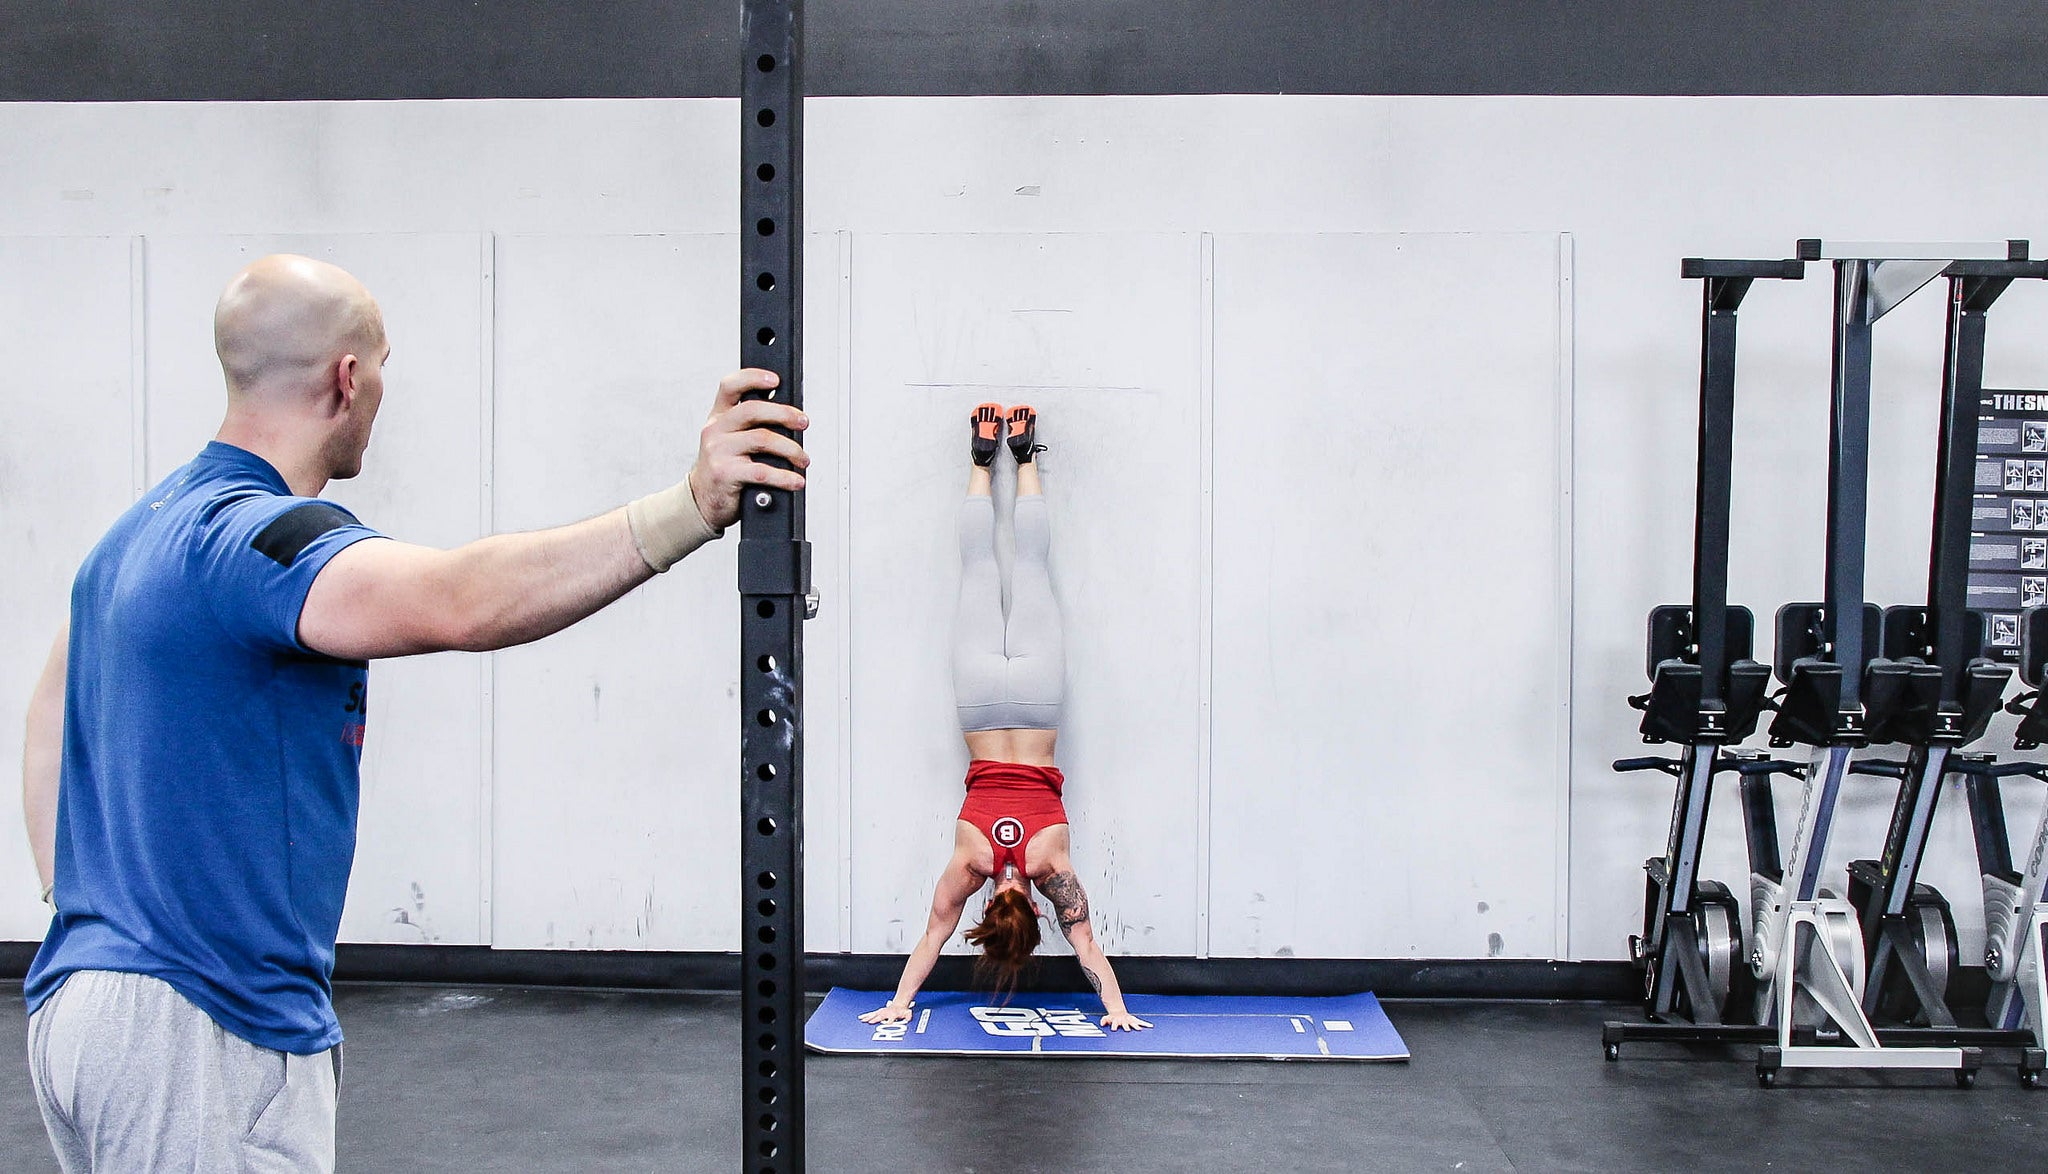 Emily Abbott Training for the CrossFit Games via the Blonyx Blog